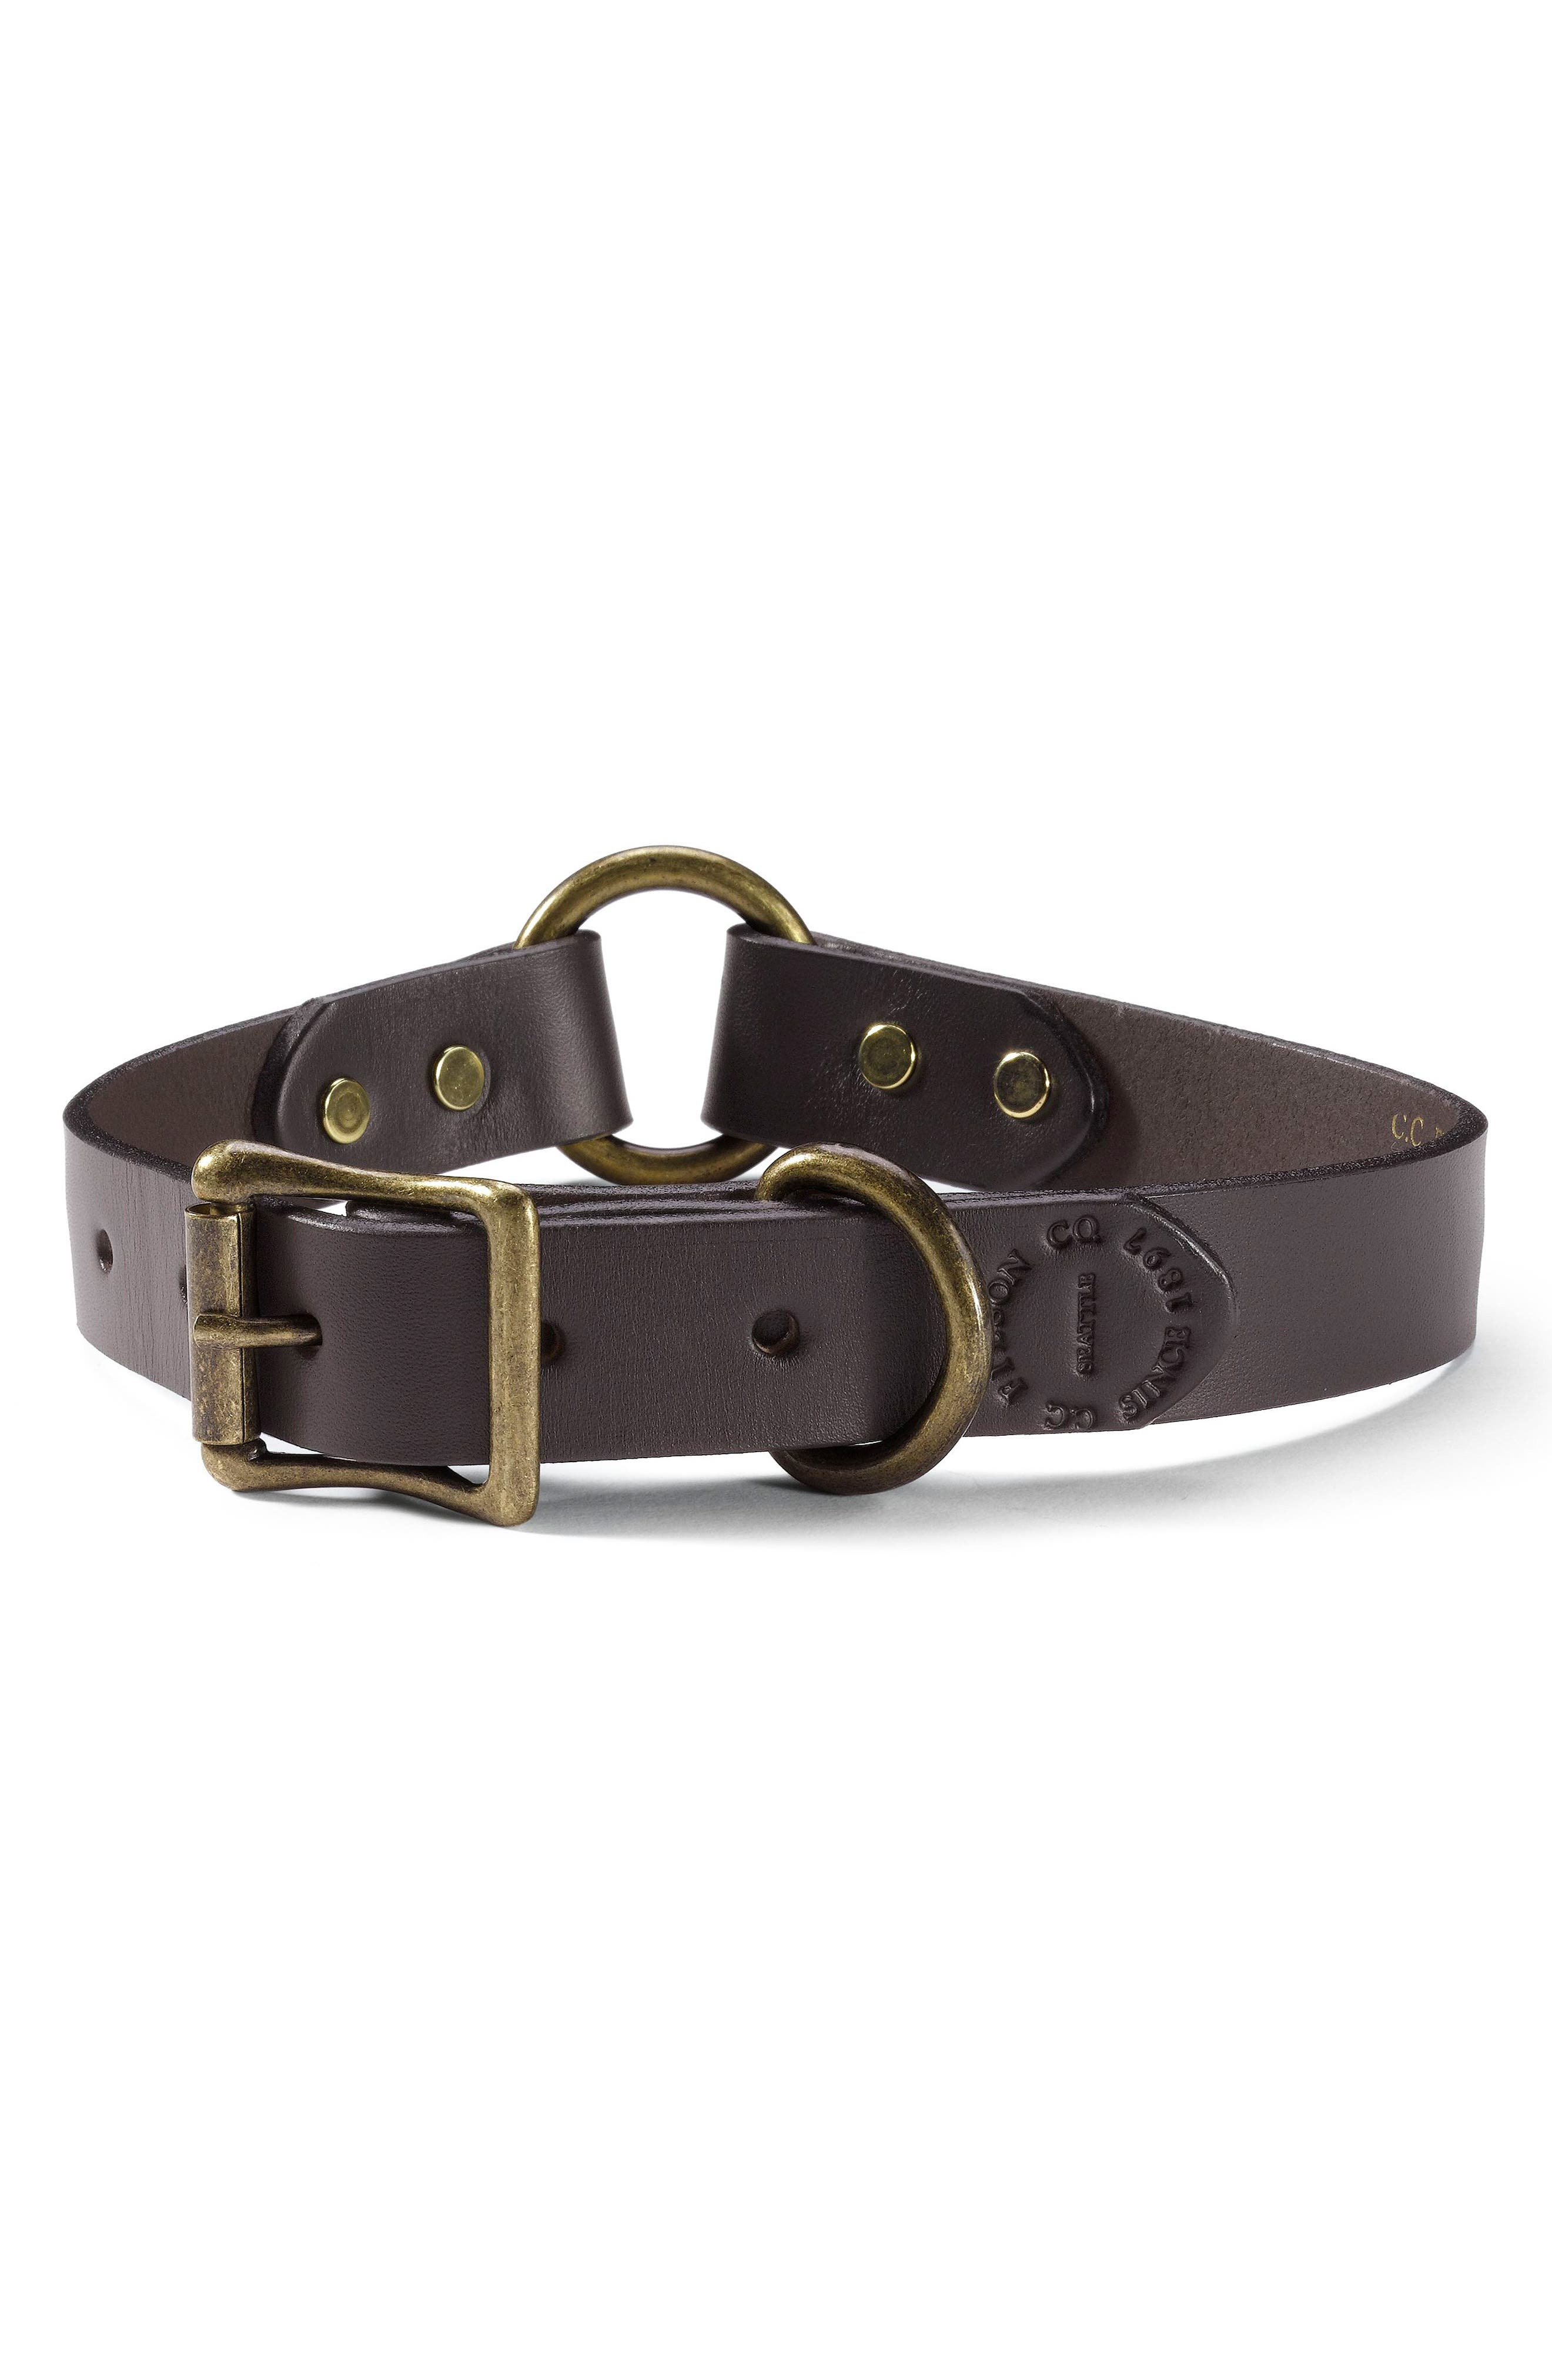 Leather Dog Collar,                             Main thumbnail 1, color,                             BROWN